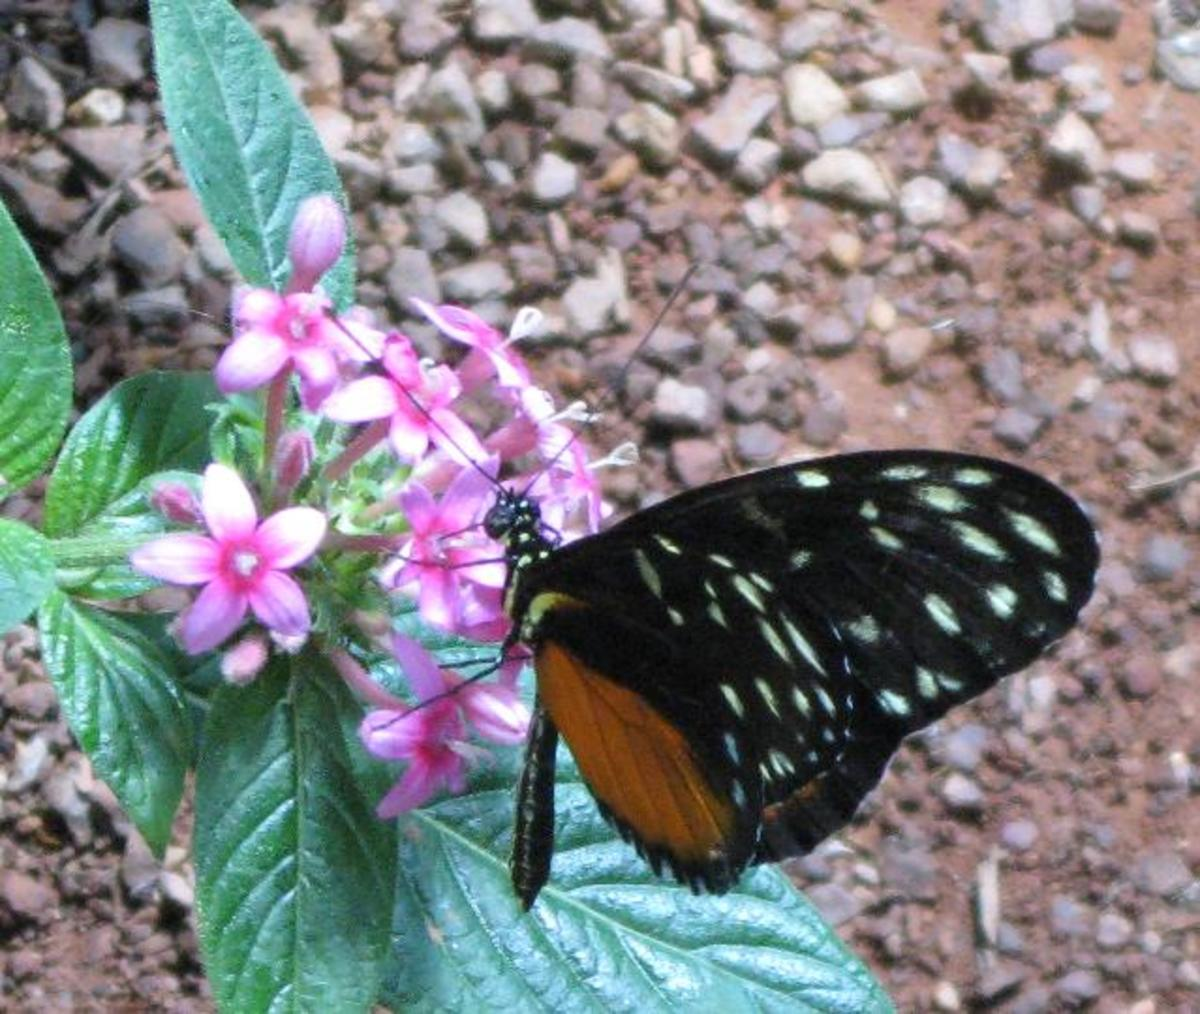 Closeup Photo of Monarch Butterfly drawing nectar from a flower